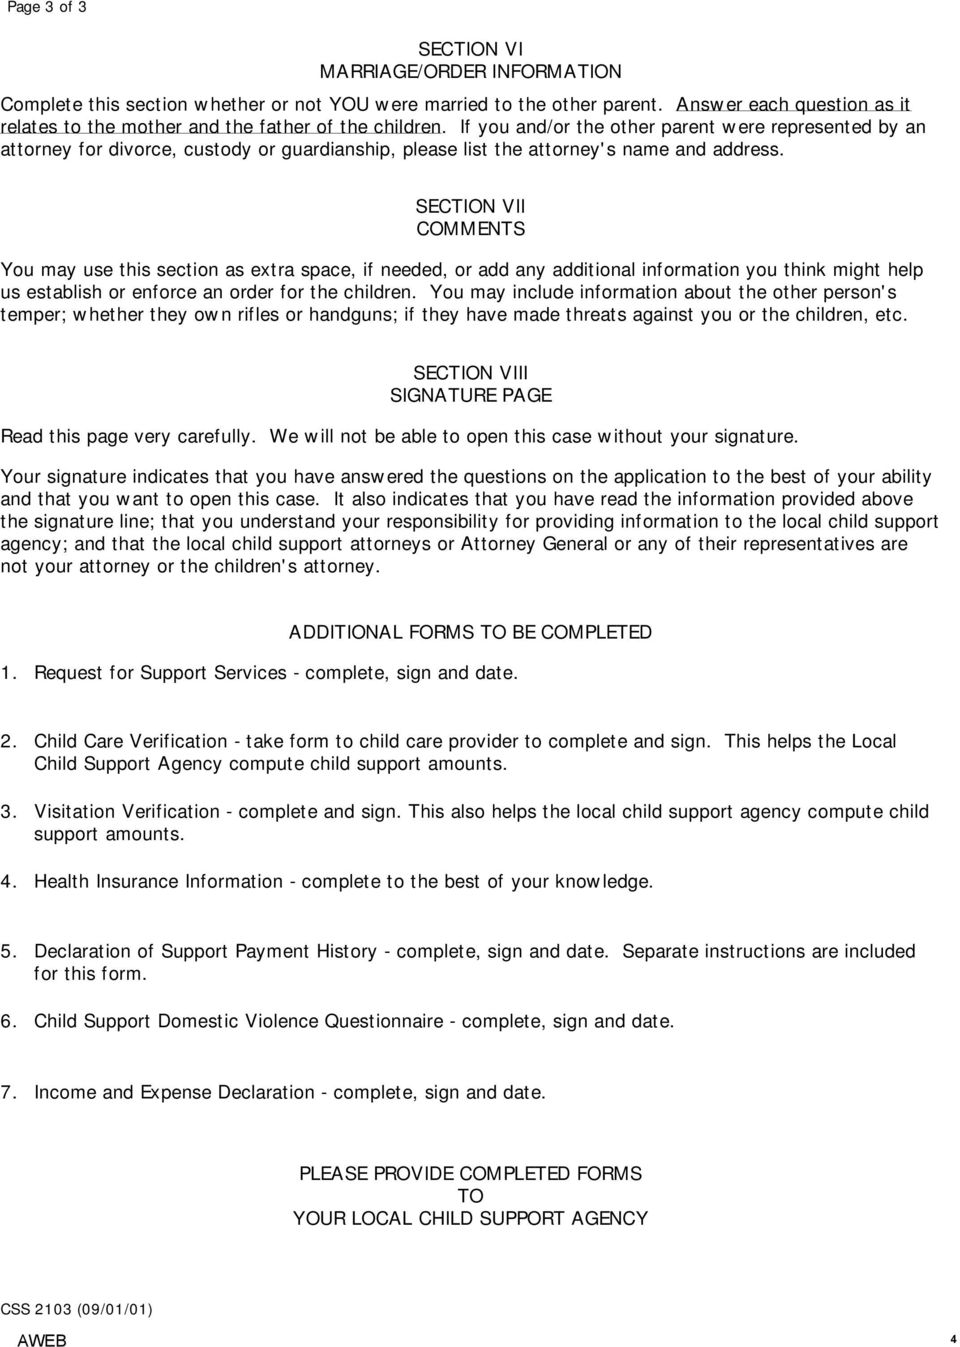 Child Support Income Verification Letter from docplayer.net